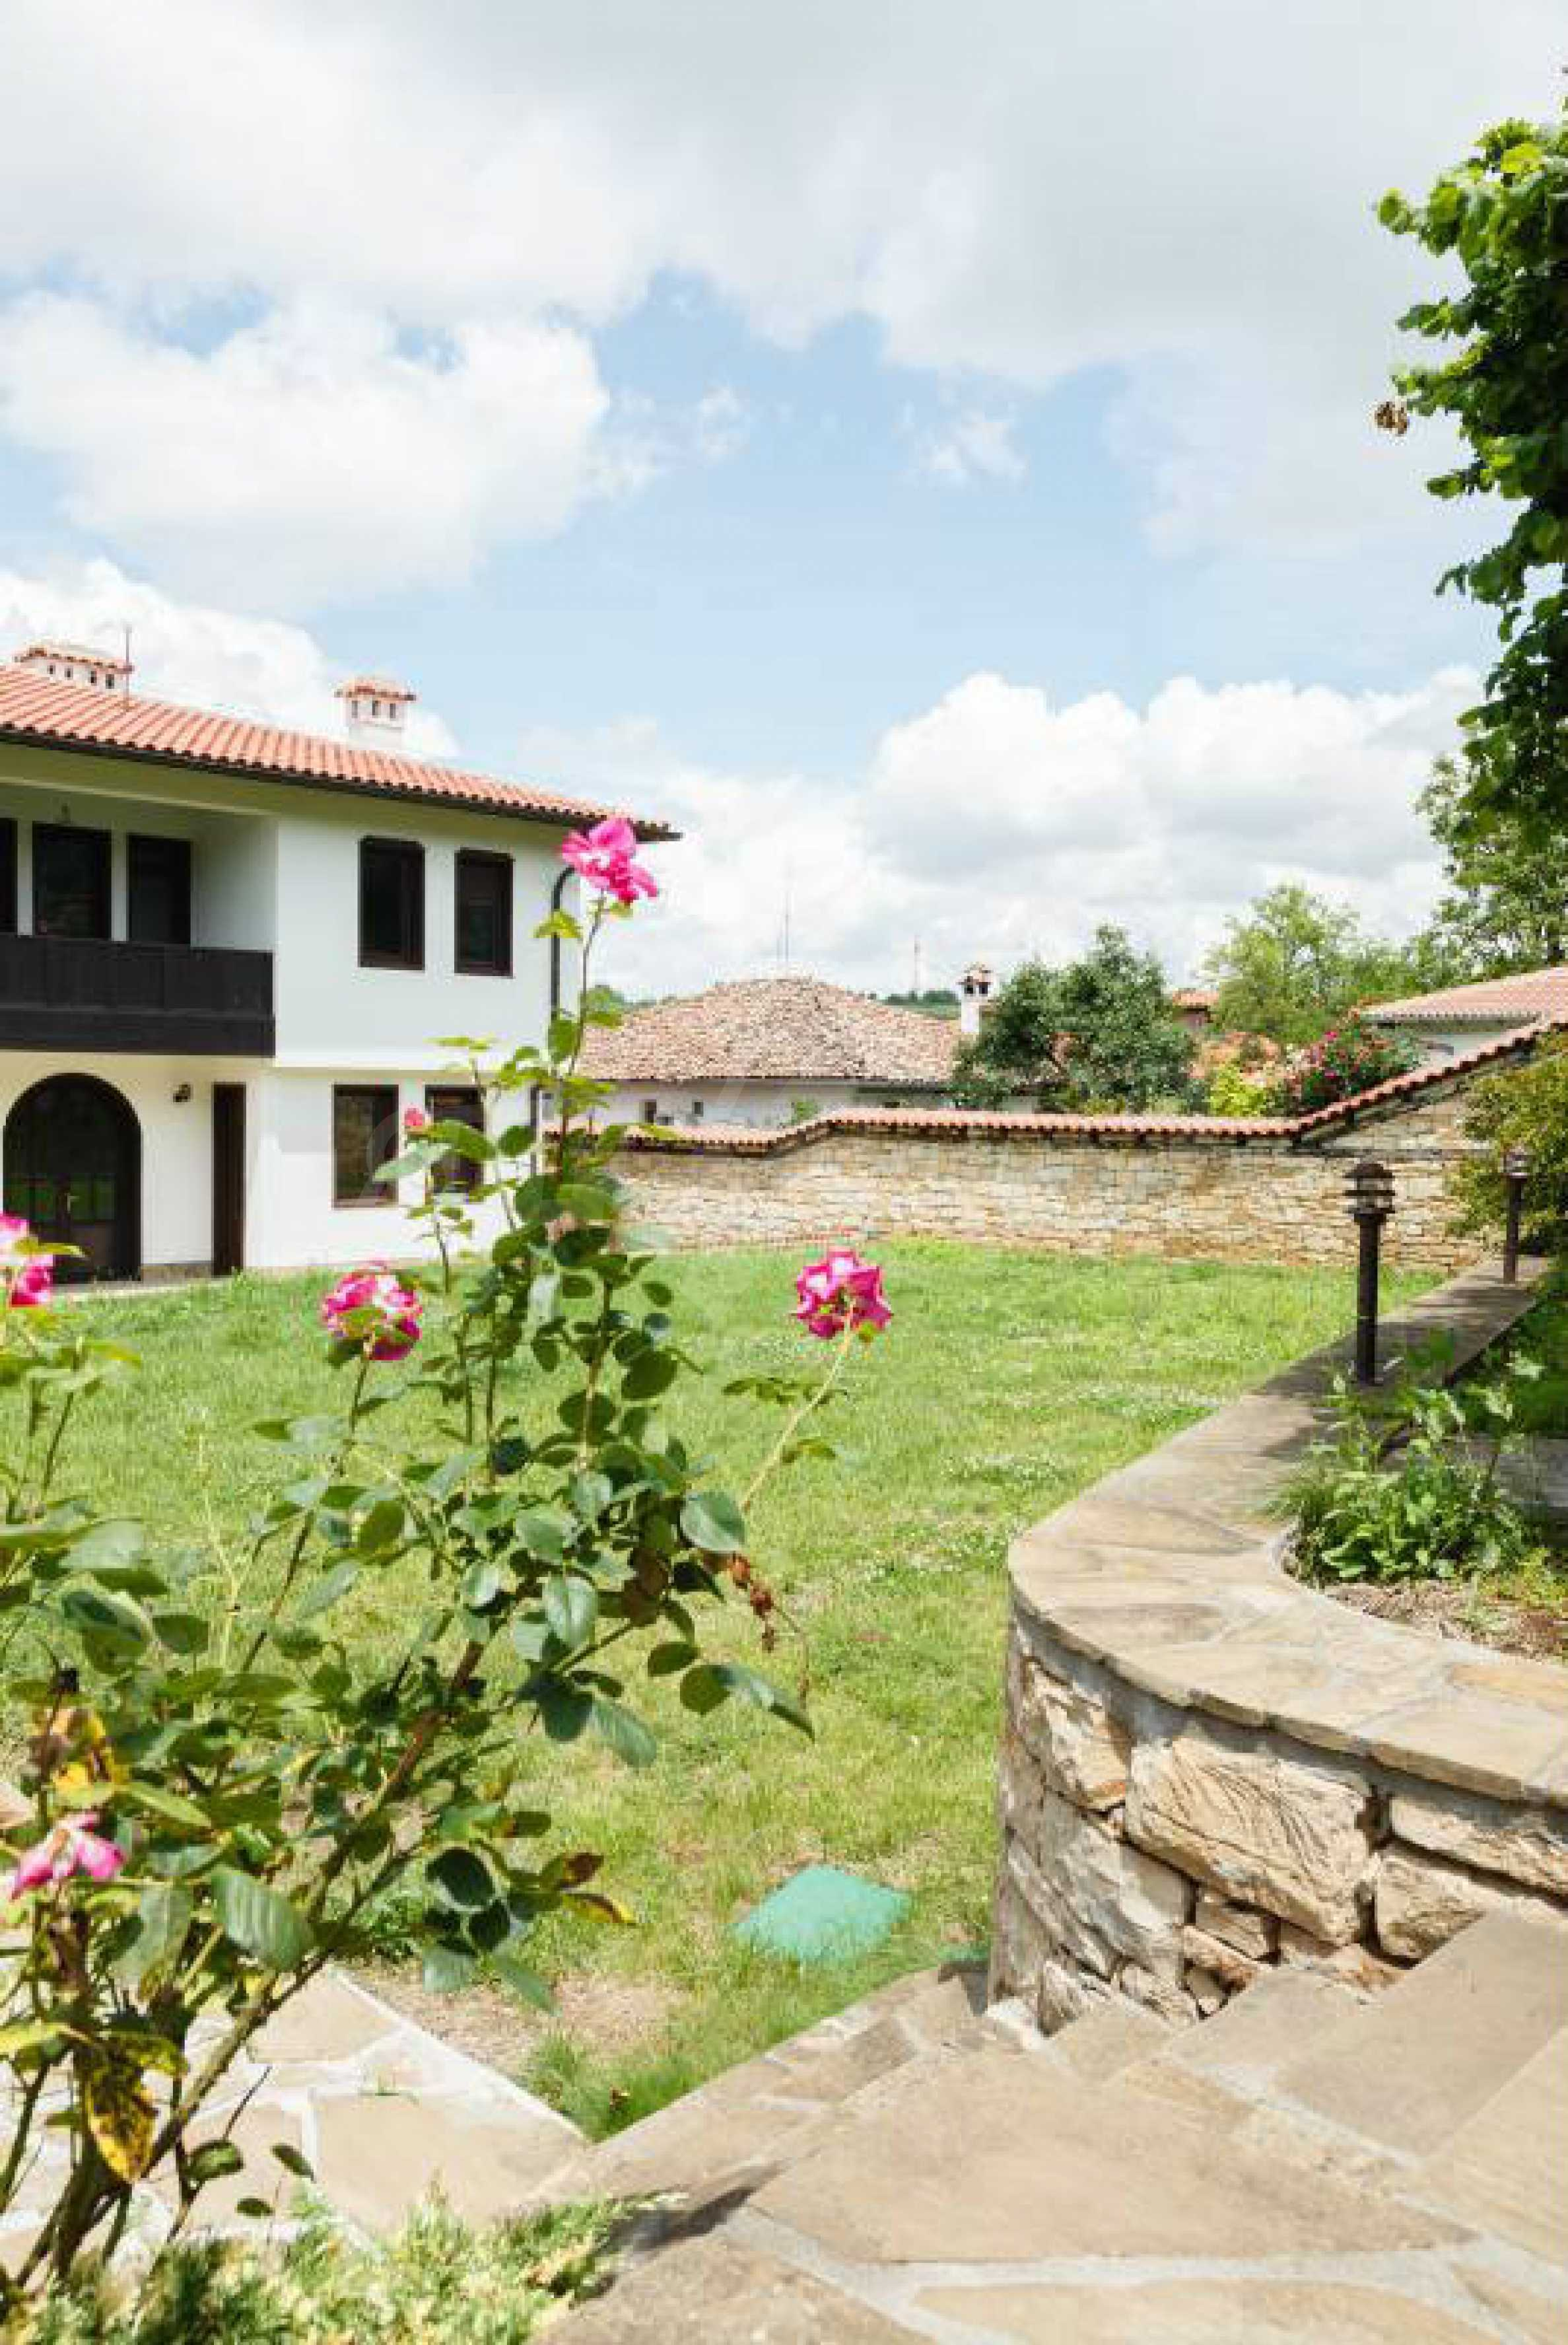 Fully equipped hotel, a restaurant, a house and a yard in the center of popular Arbanassi village 41